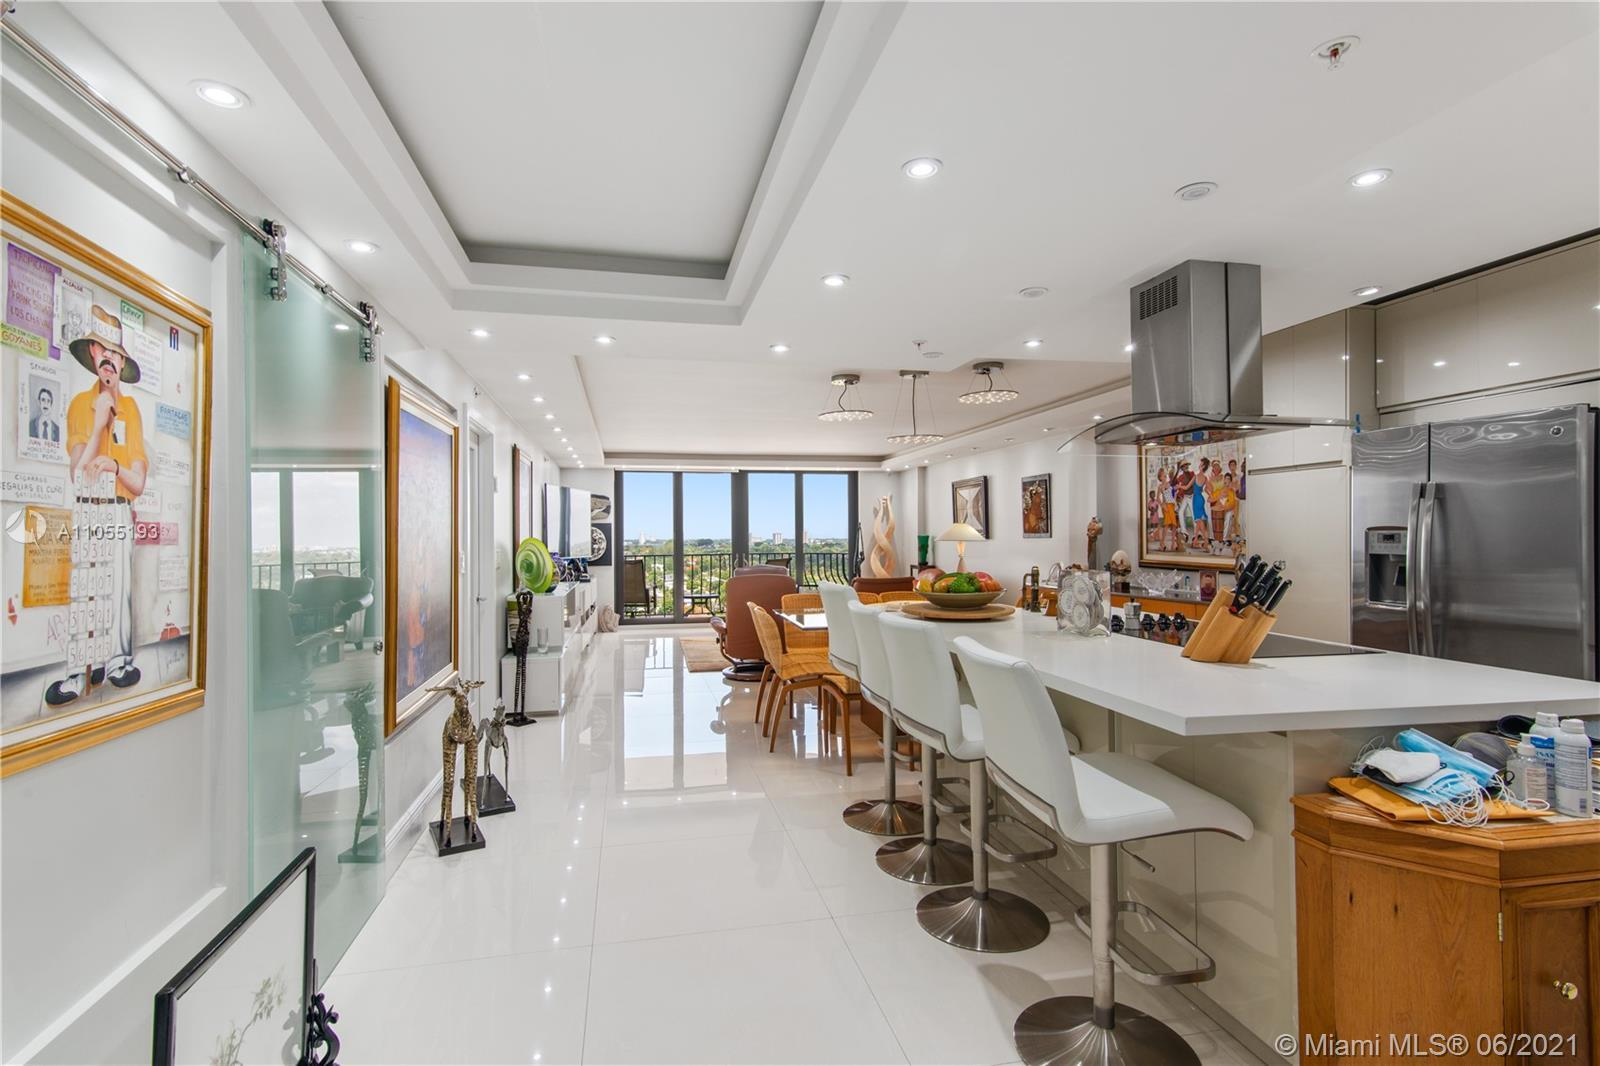 Stunning fully remodeled penthouse unit in one of the premier towers in highly sought after neighbor